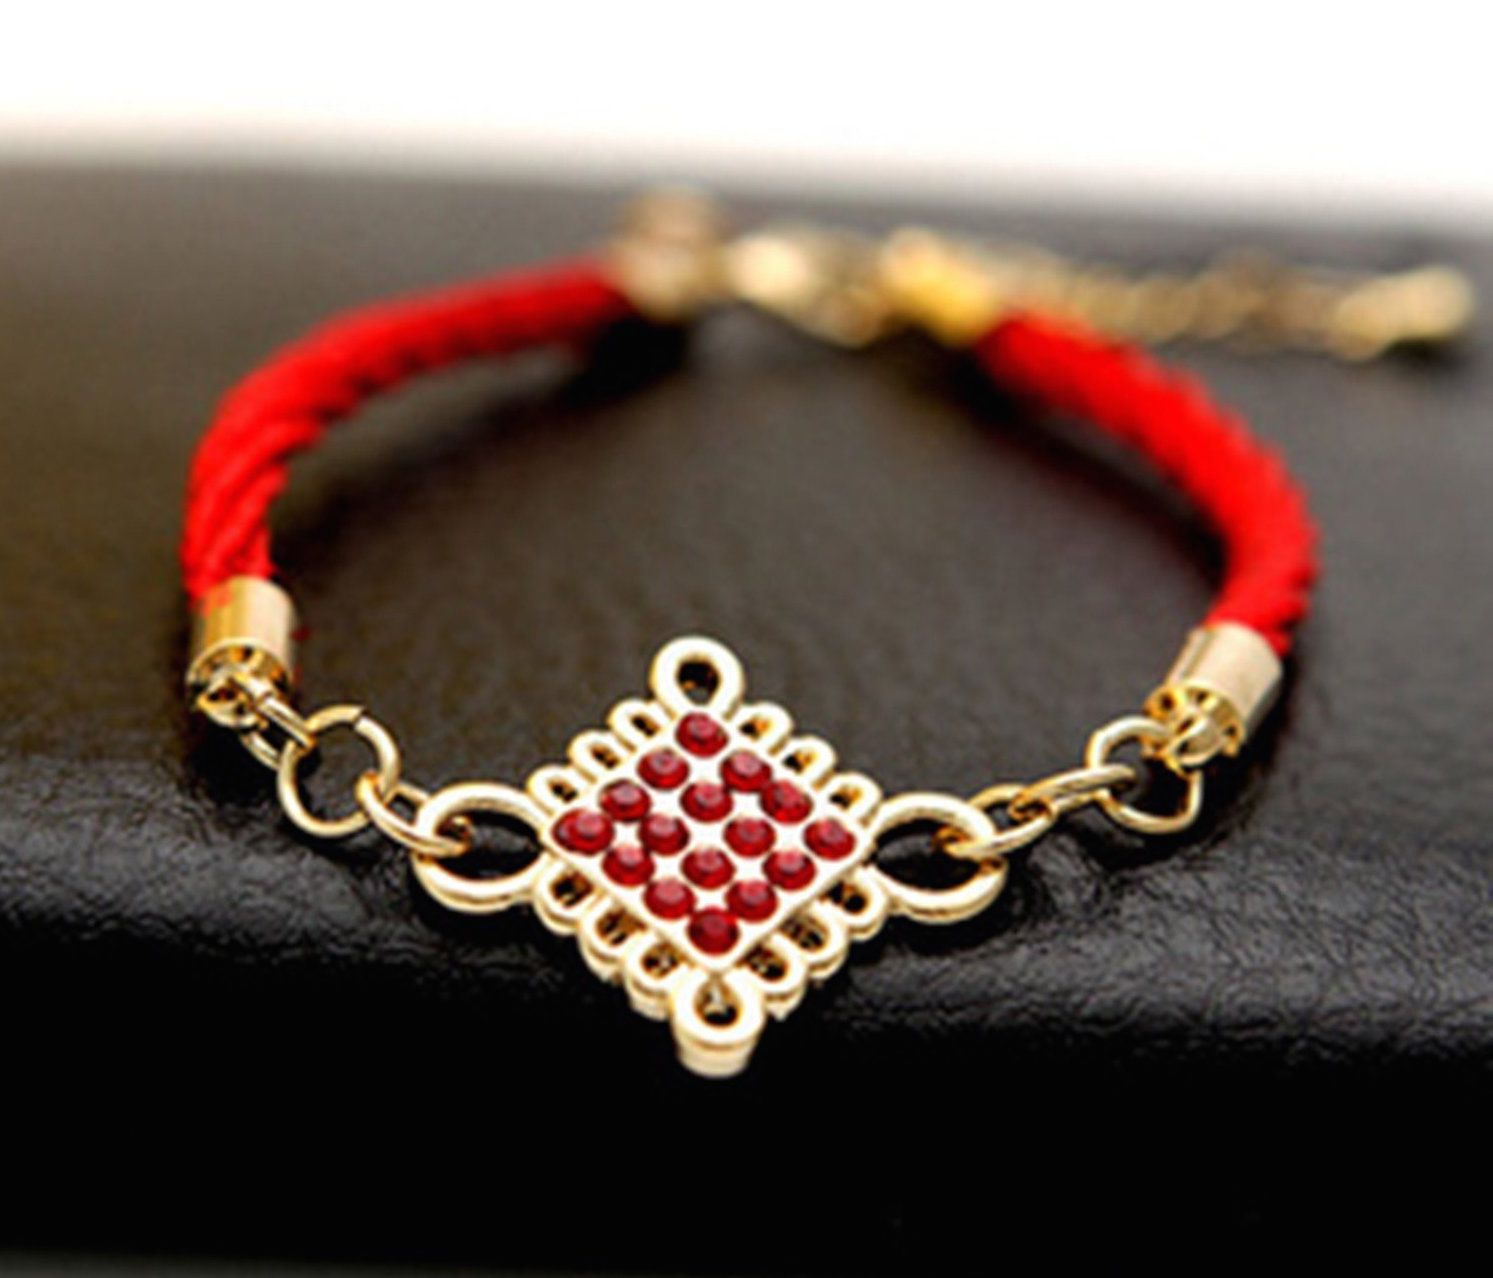 8 Mystic Knot Good Luck Charms Cocoa Jewelry Rules Of Love Bracelet Emas